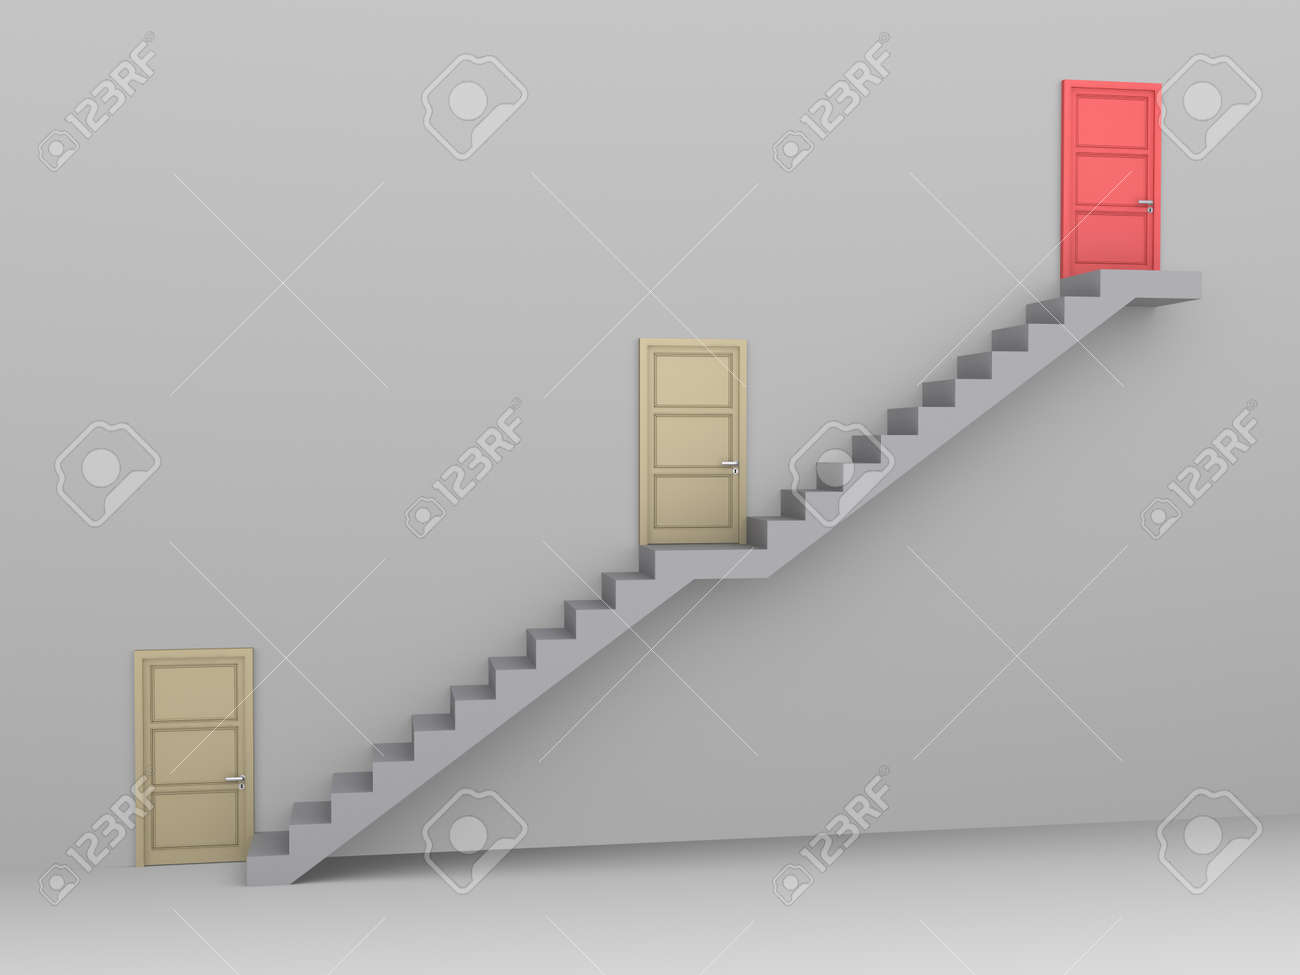 Staircase with three doors and the higher one is the best - 53773867